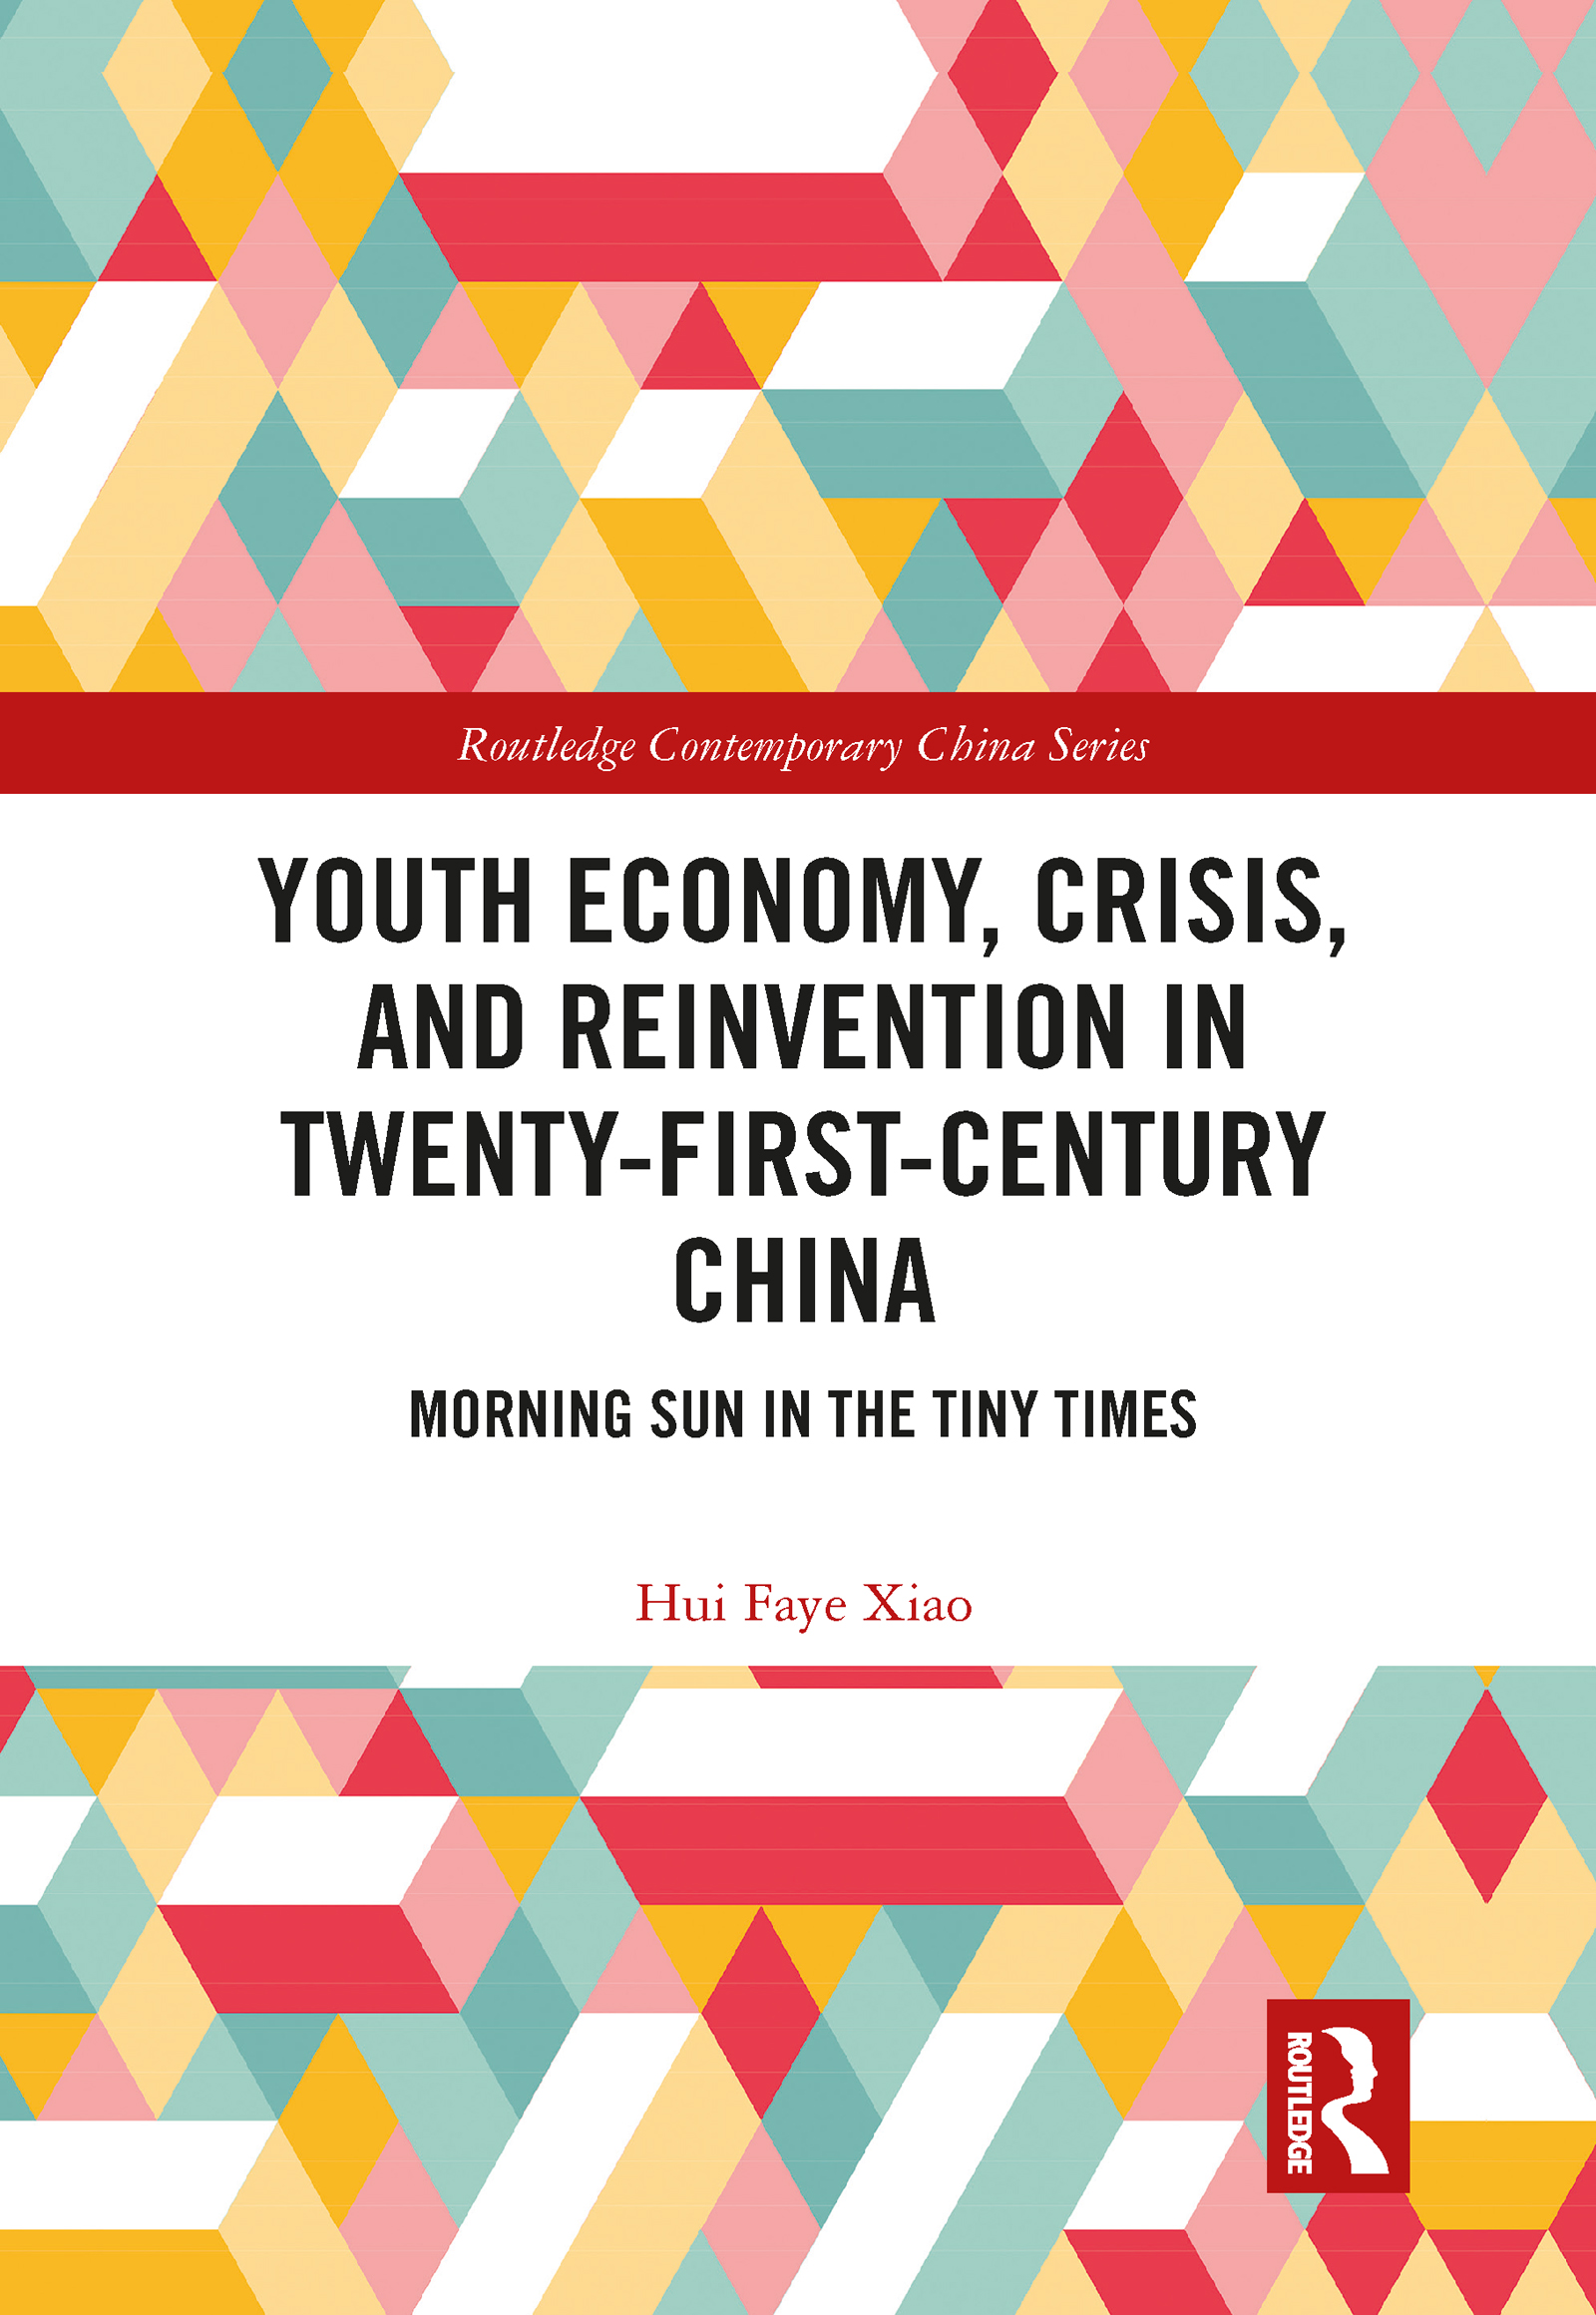 Youth Economy, Crisis, and Reinvention in Twenty-First-Century China